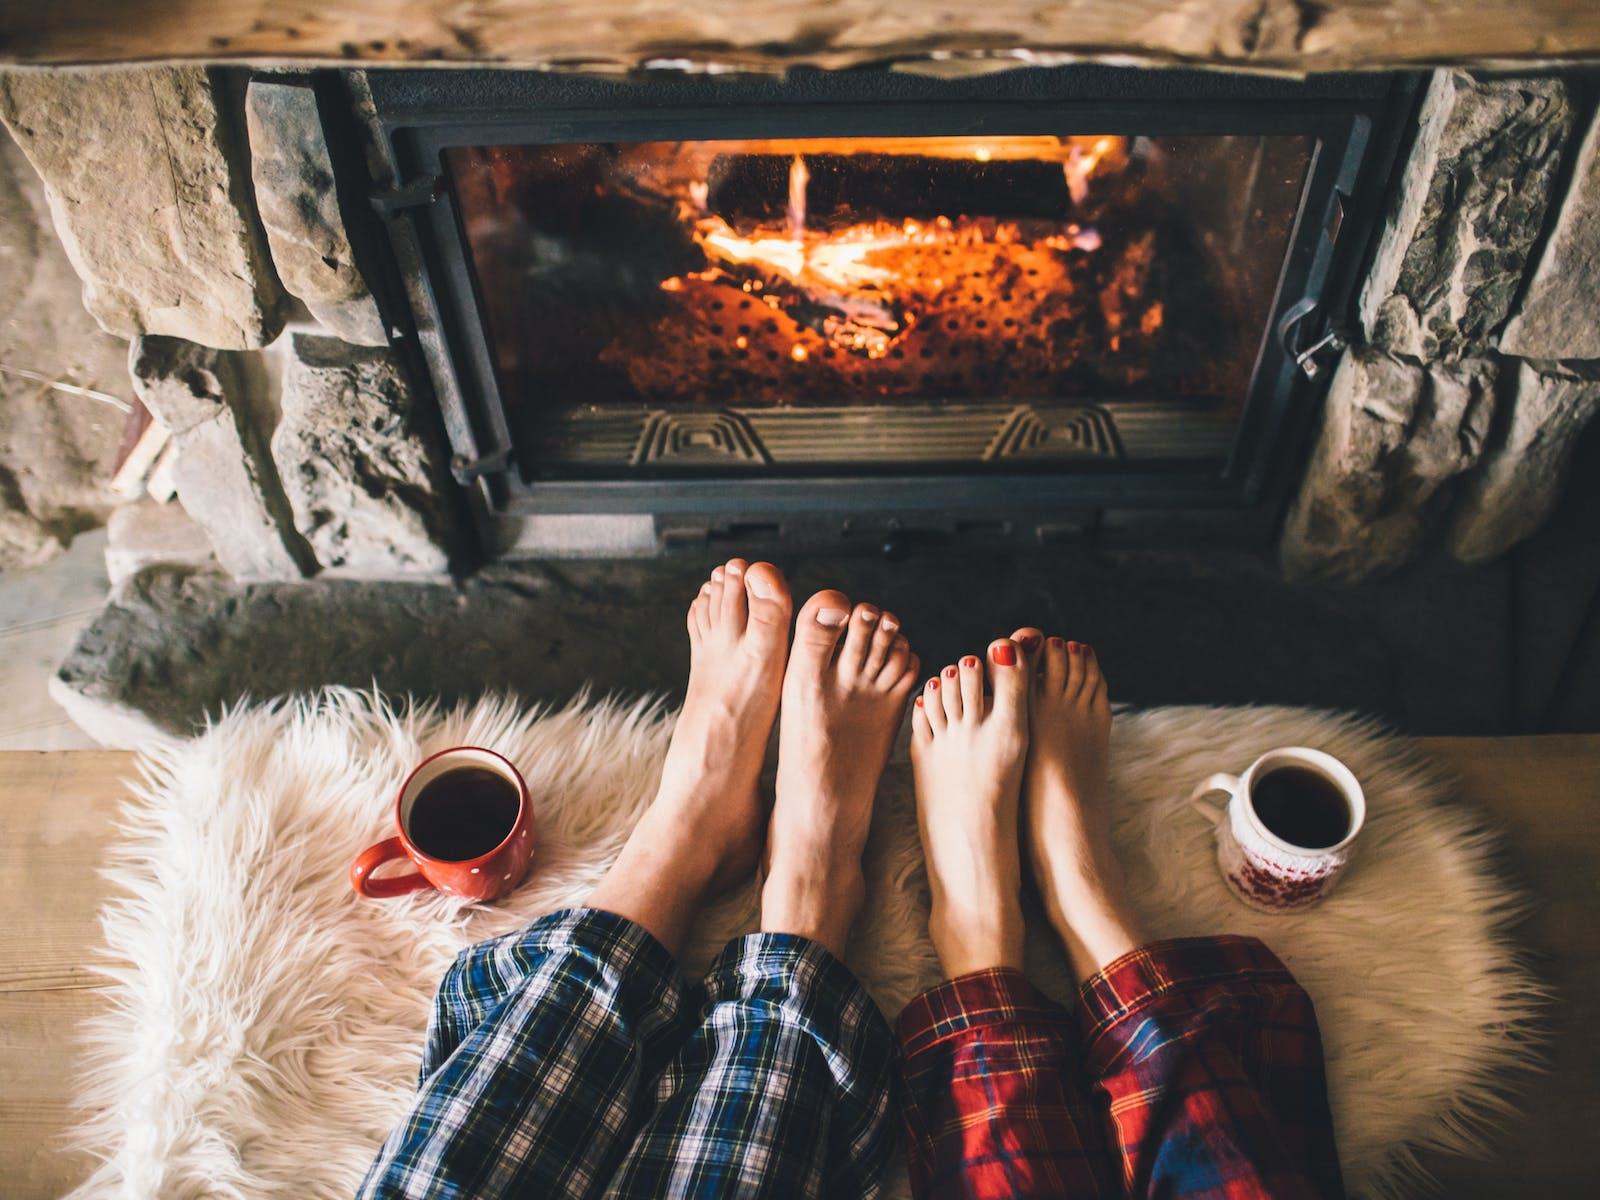 Two people in pajamas warming their feet by the fire